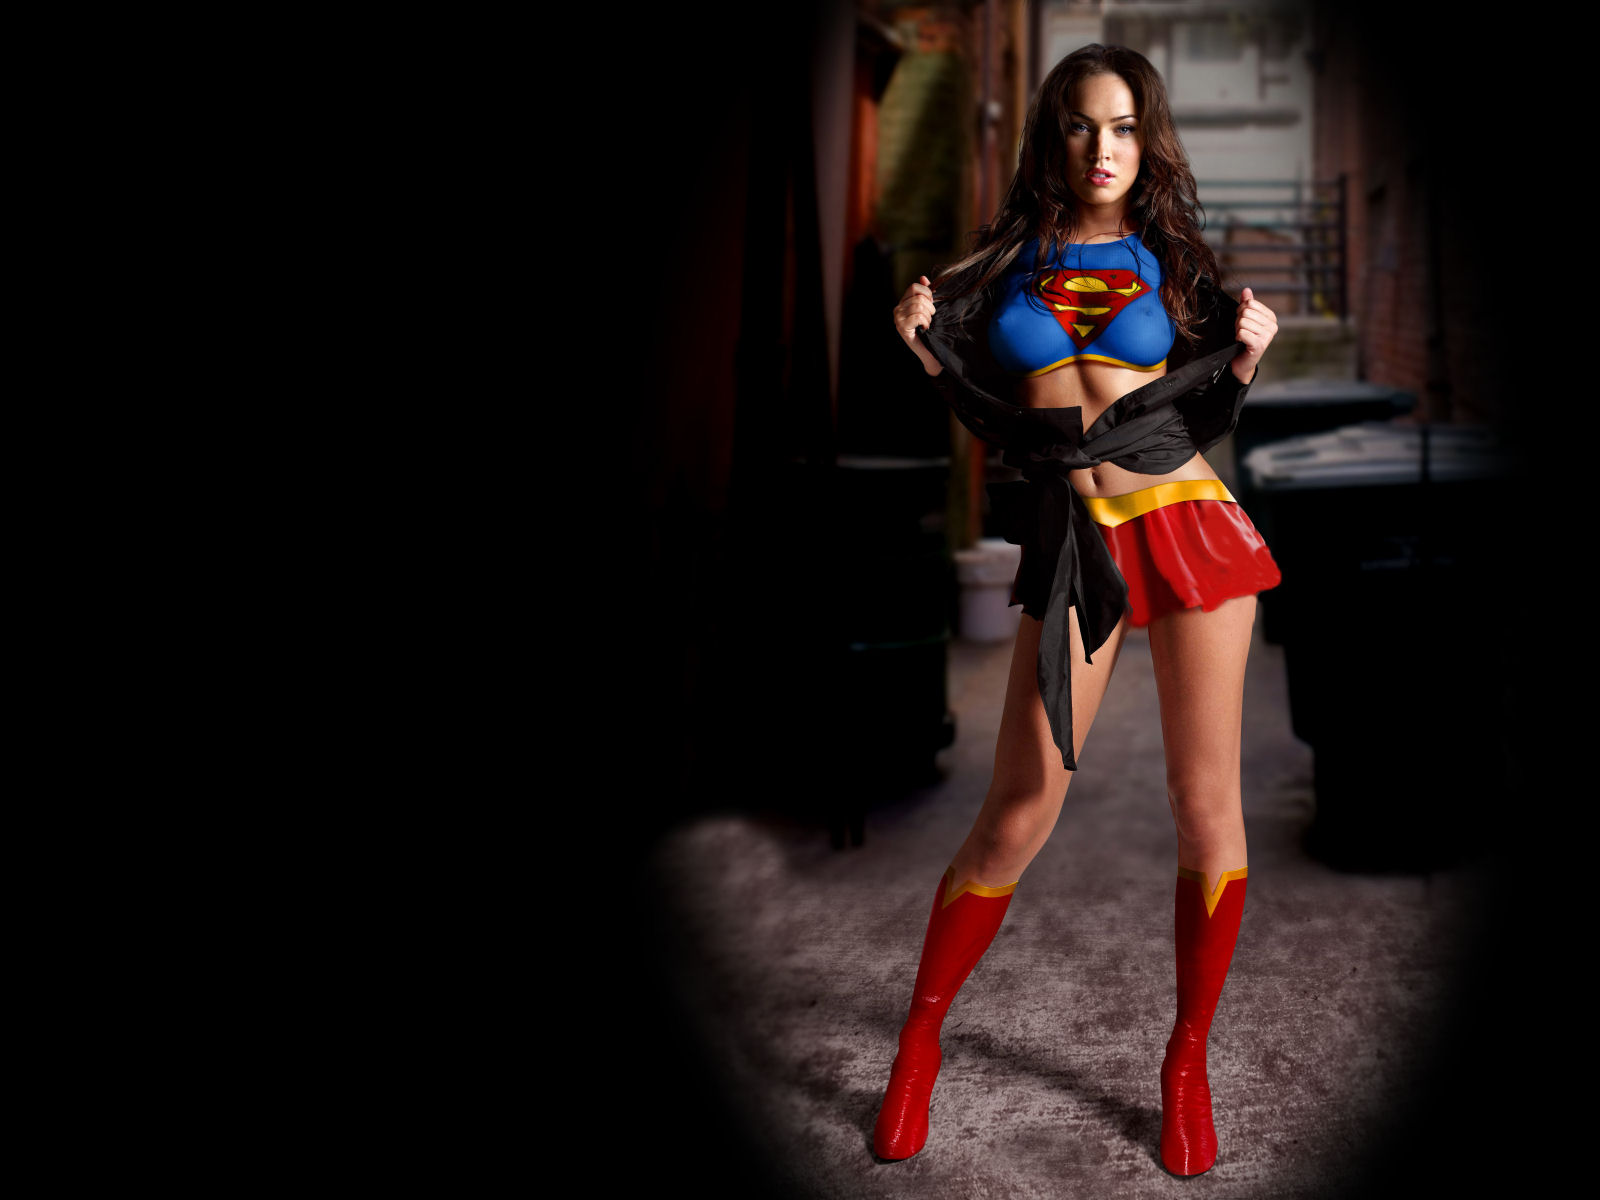 d33blog  Megan Fox As Supergirl